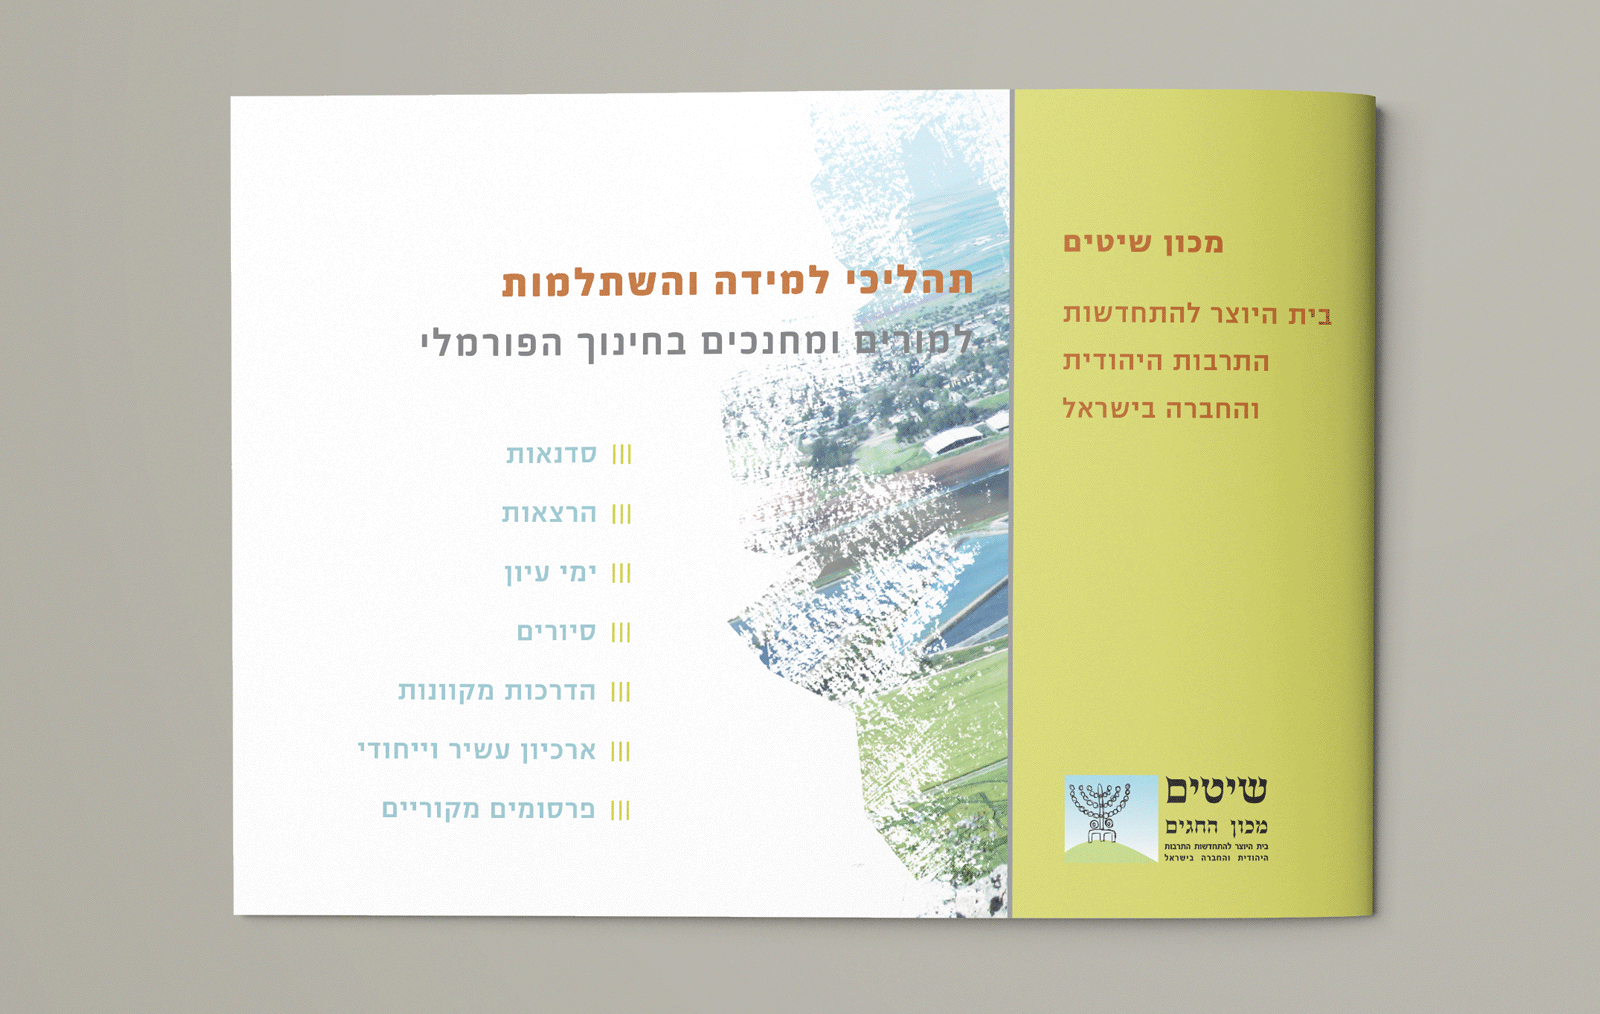 https://bigeyes.co.il/wp-content/uploads/2019/07/shitim-brochure-1.png